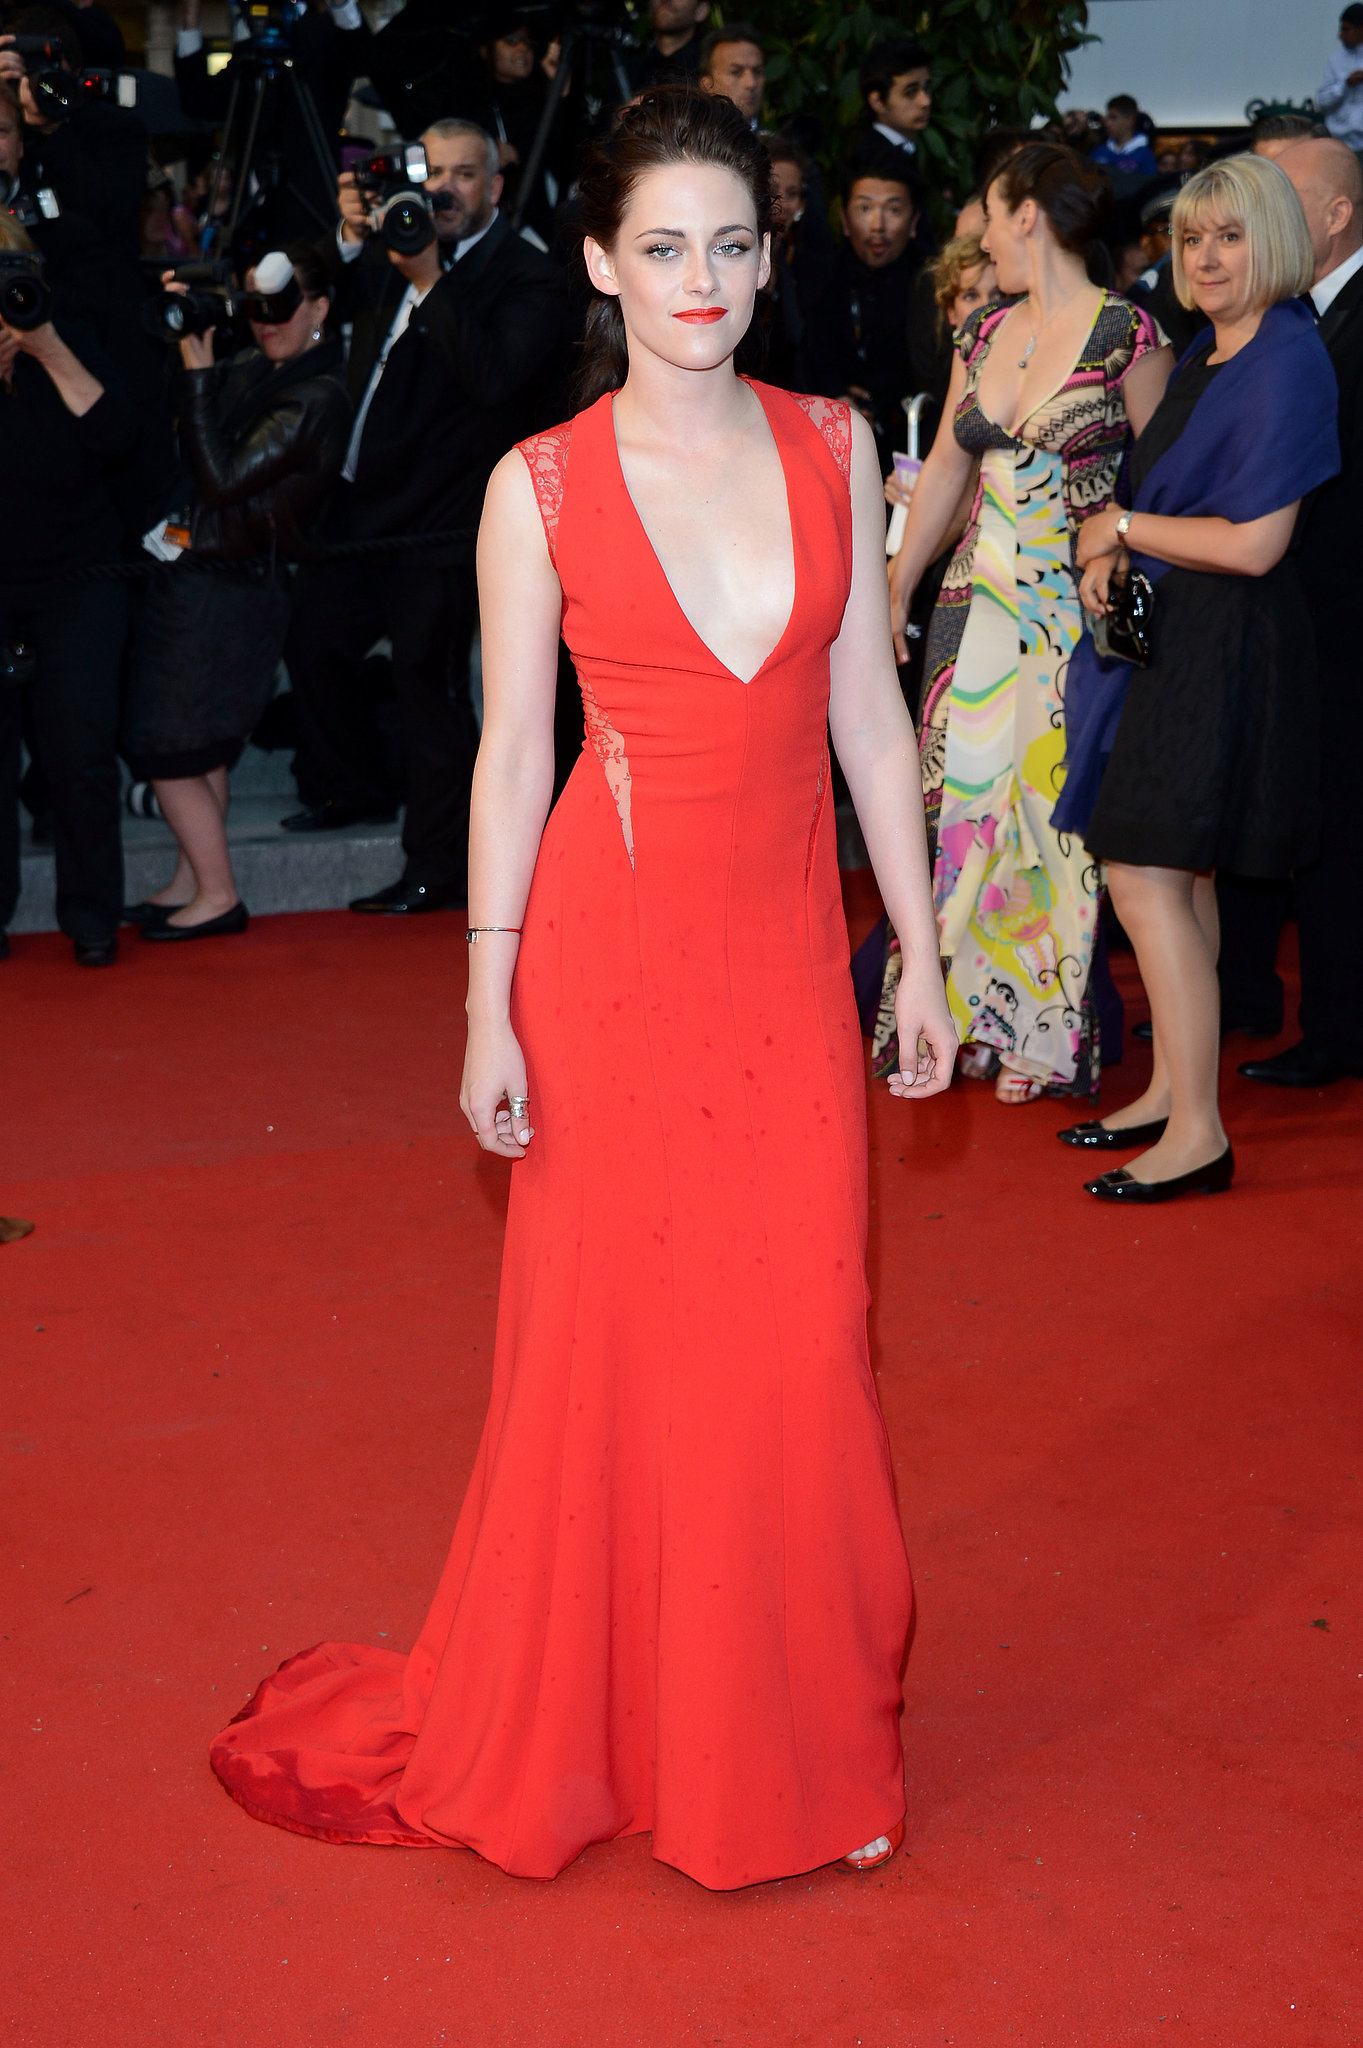 Stewart looked red hot in a fitted Reem Acra gown with a deep V neckline at the Cannes Film Festival premiere of Cosmopolis in late May 2012.